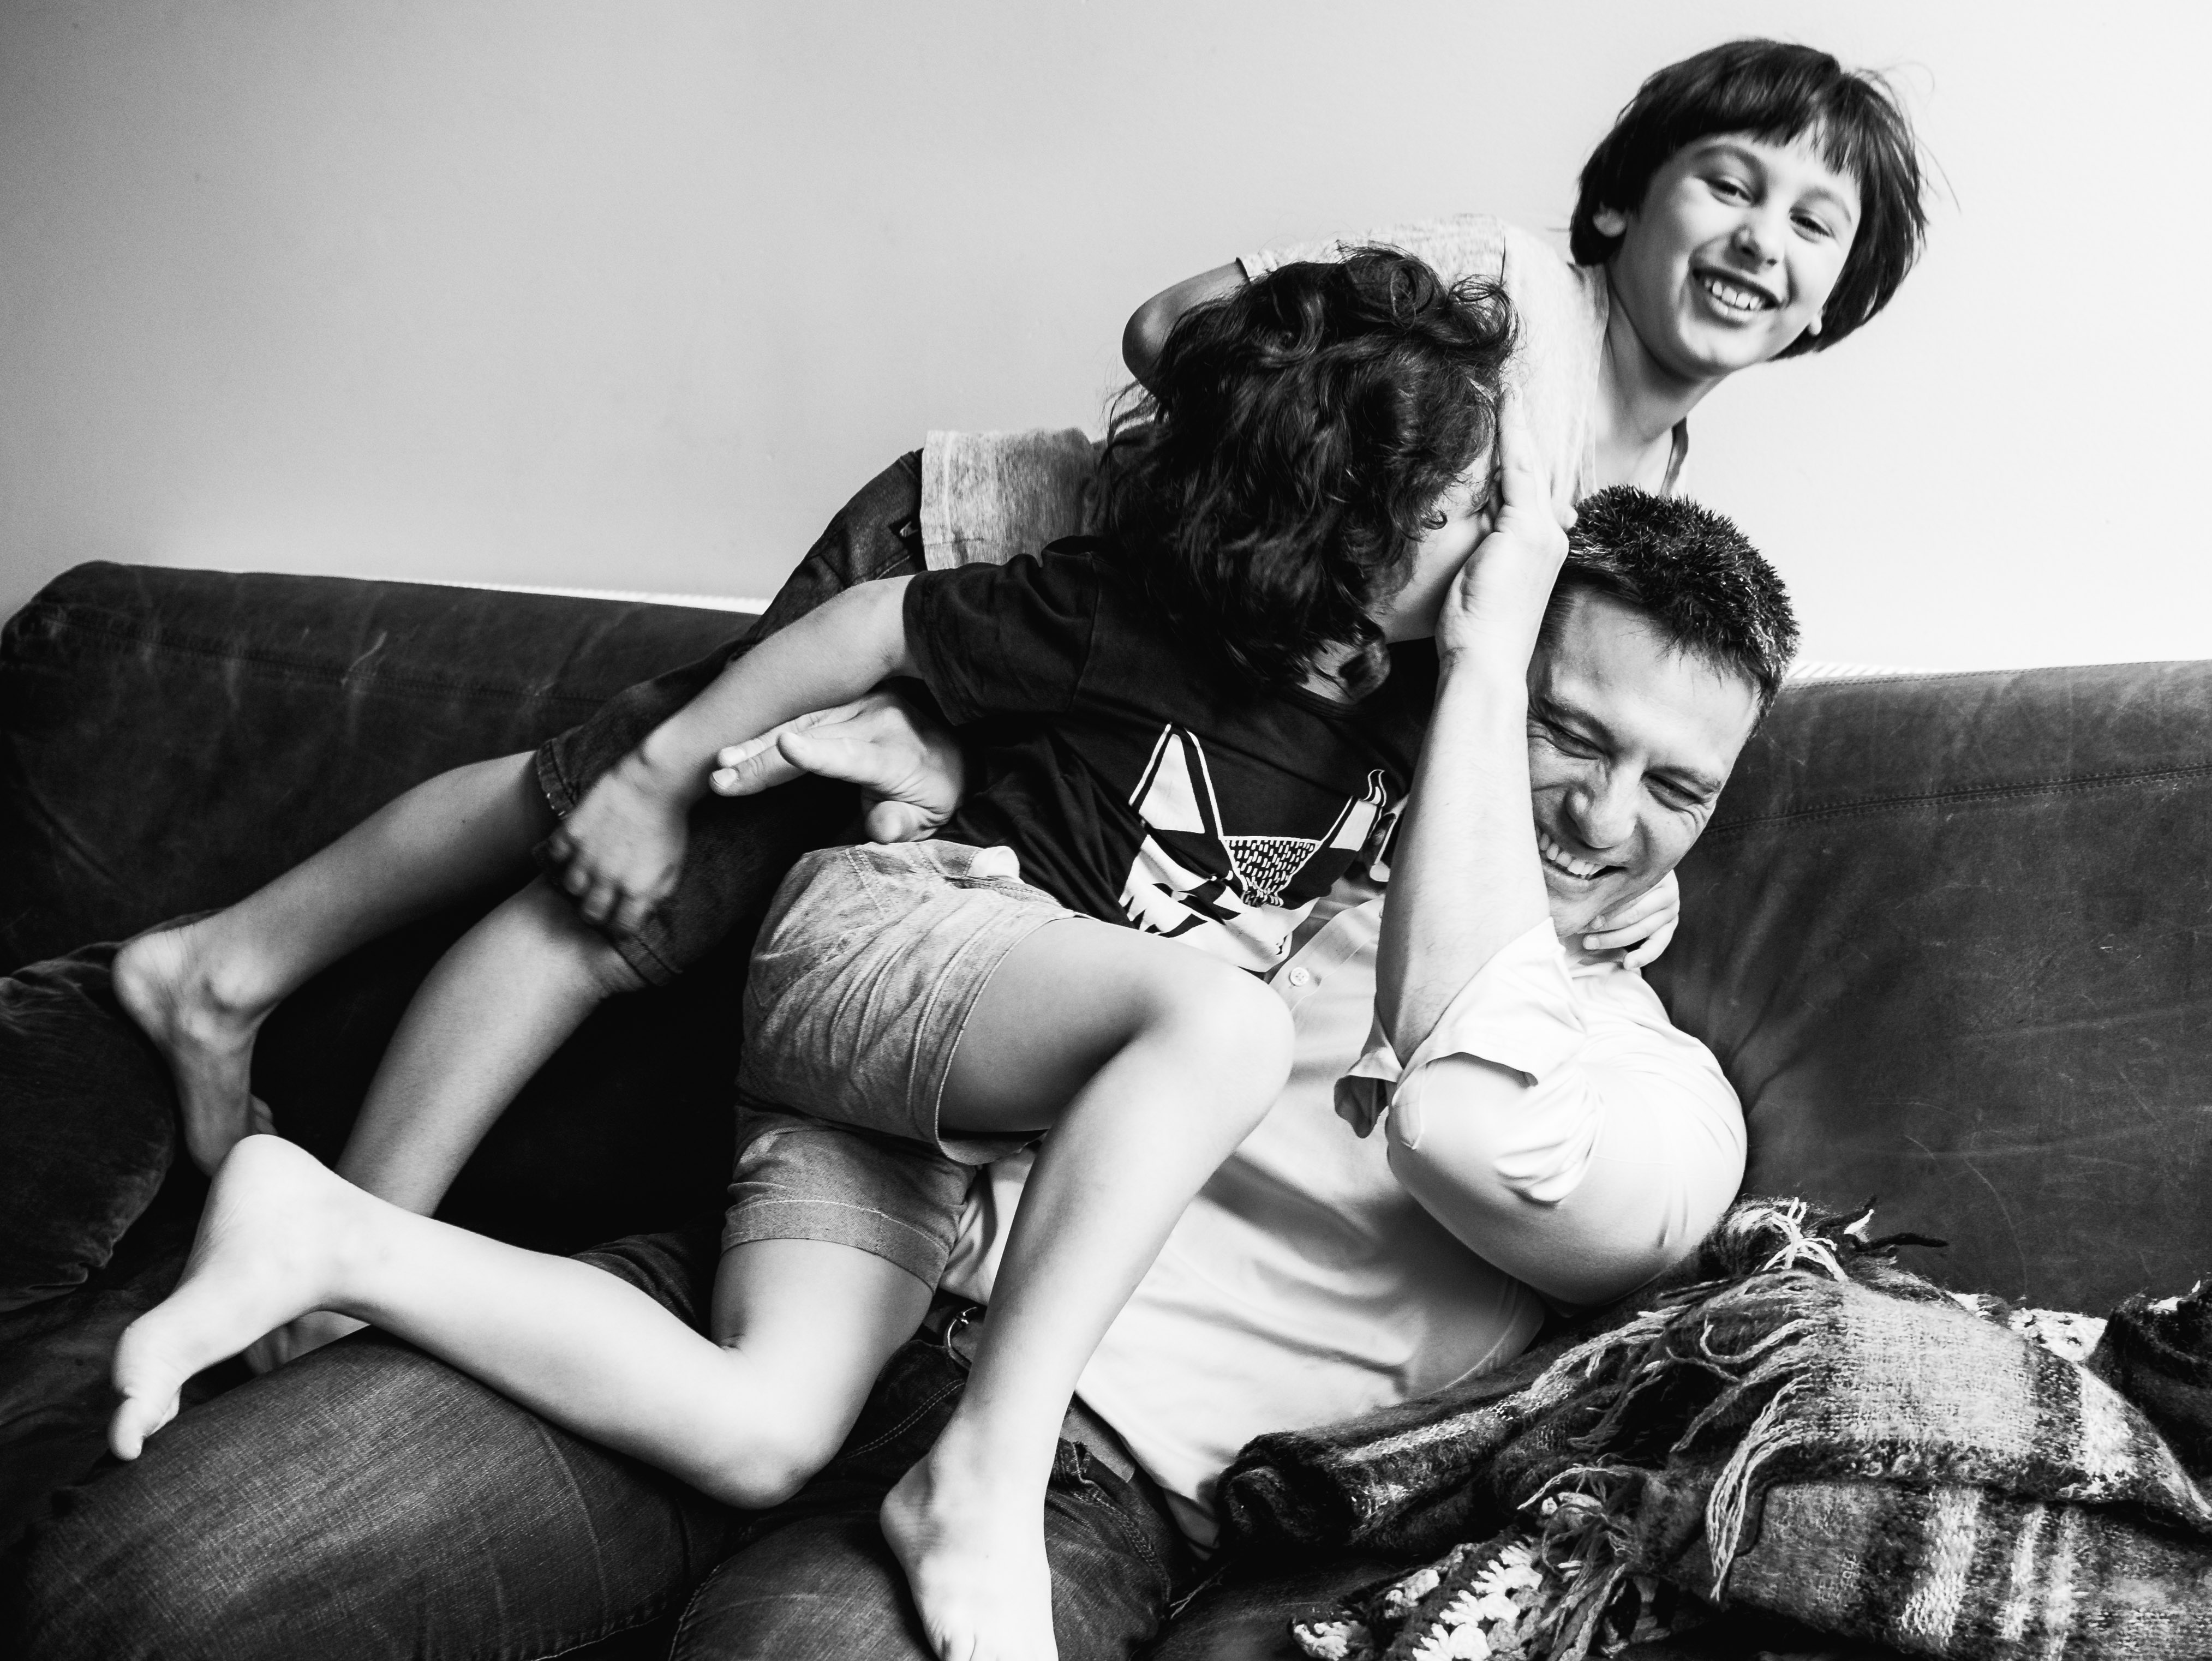 in-home session photograph of boys wrestling their father on a couch/sofa in Carlton North, Melbourne, Australia